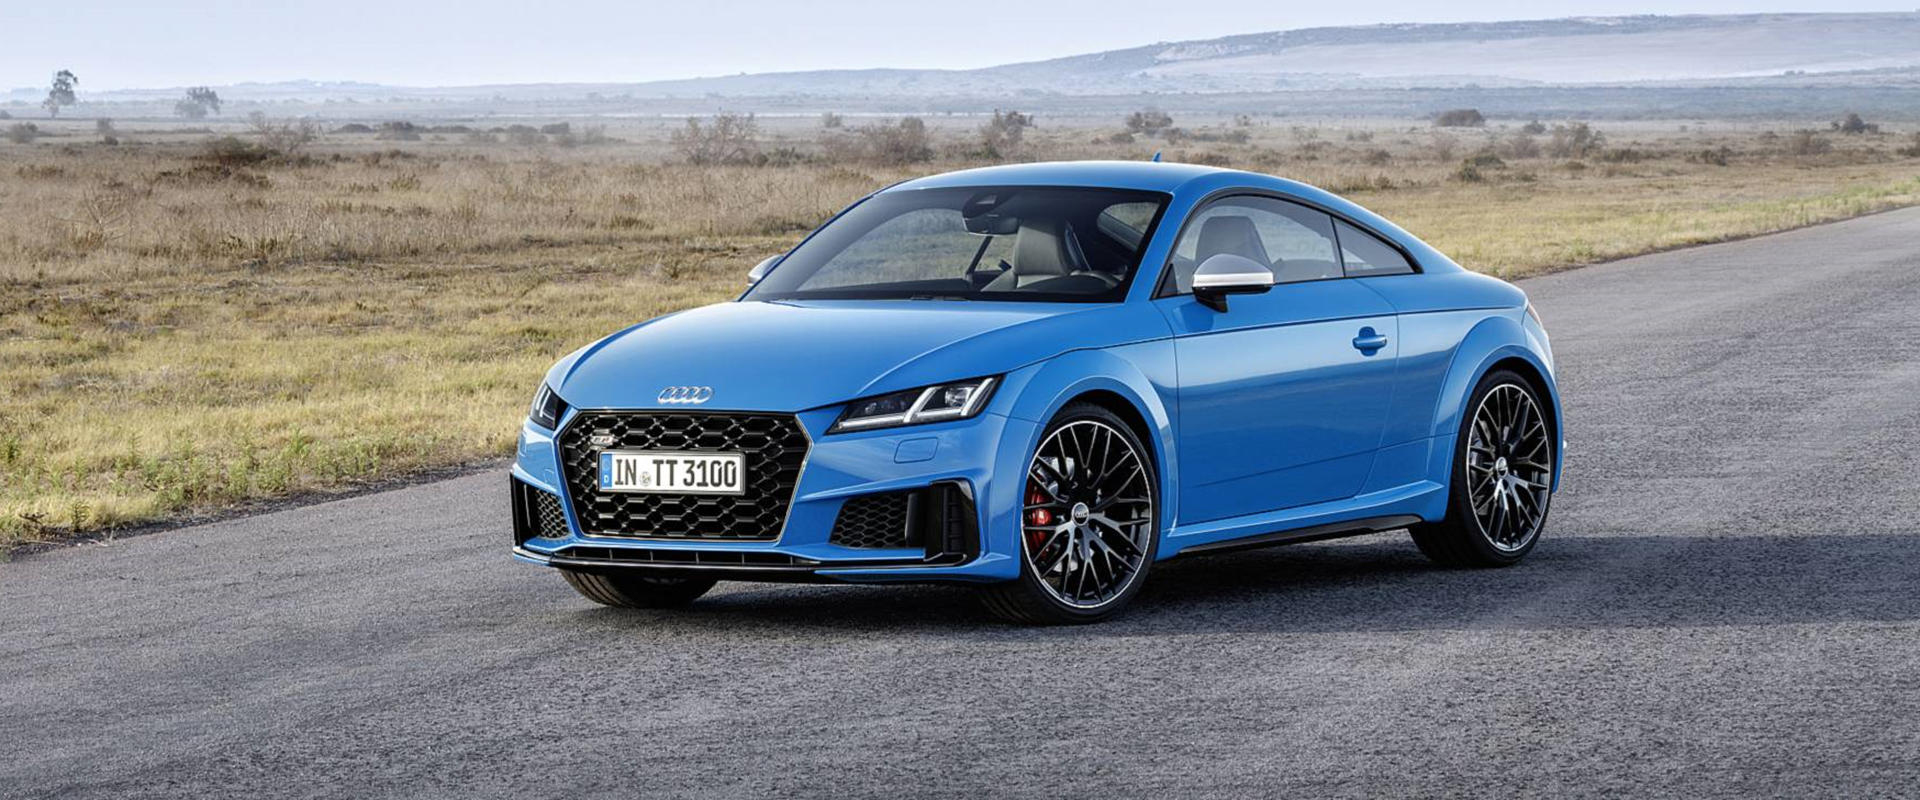 2019 audi tt arrives with sportier styling and new special editions rh carbuzz com Audi TT Roadster 2005 Audi TT Coupe